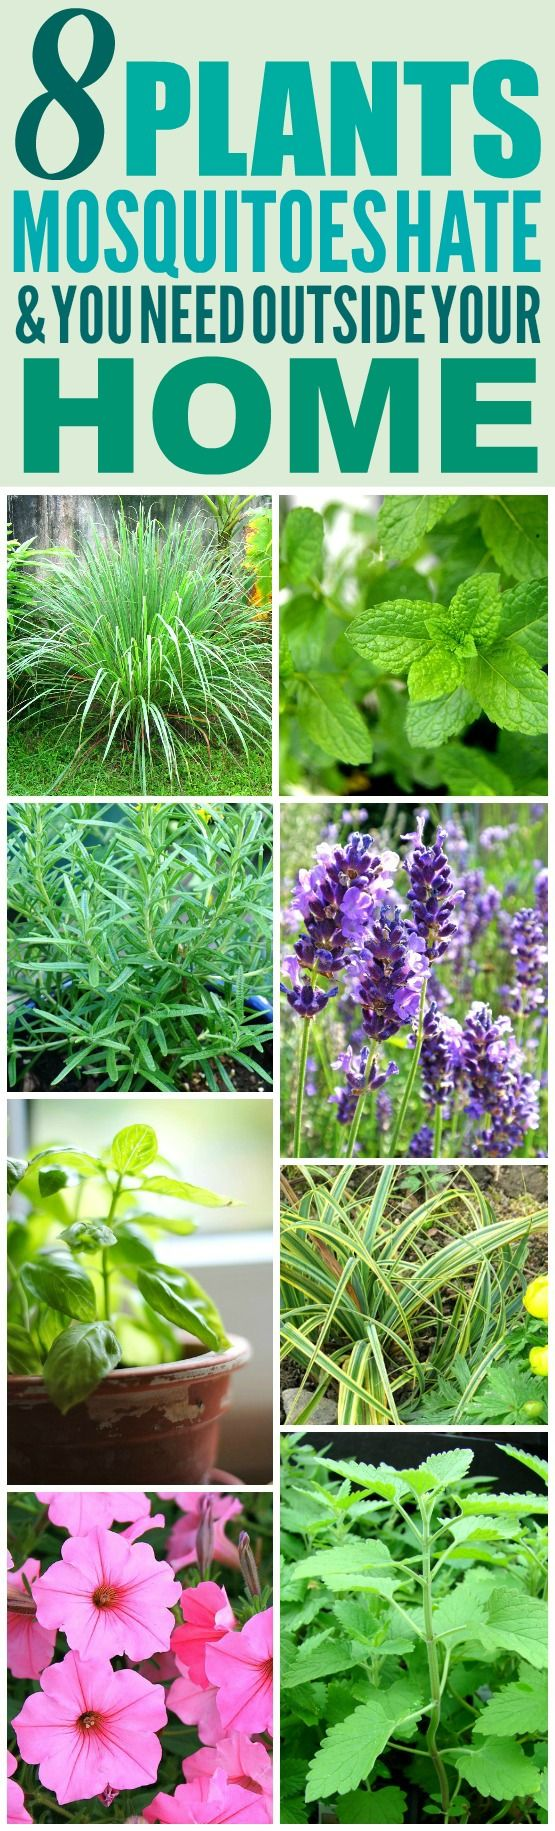 8 Amazing Plants That'll Repel Mosquitoes (And Other Pests!) #mosquitoplants